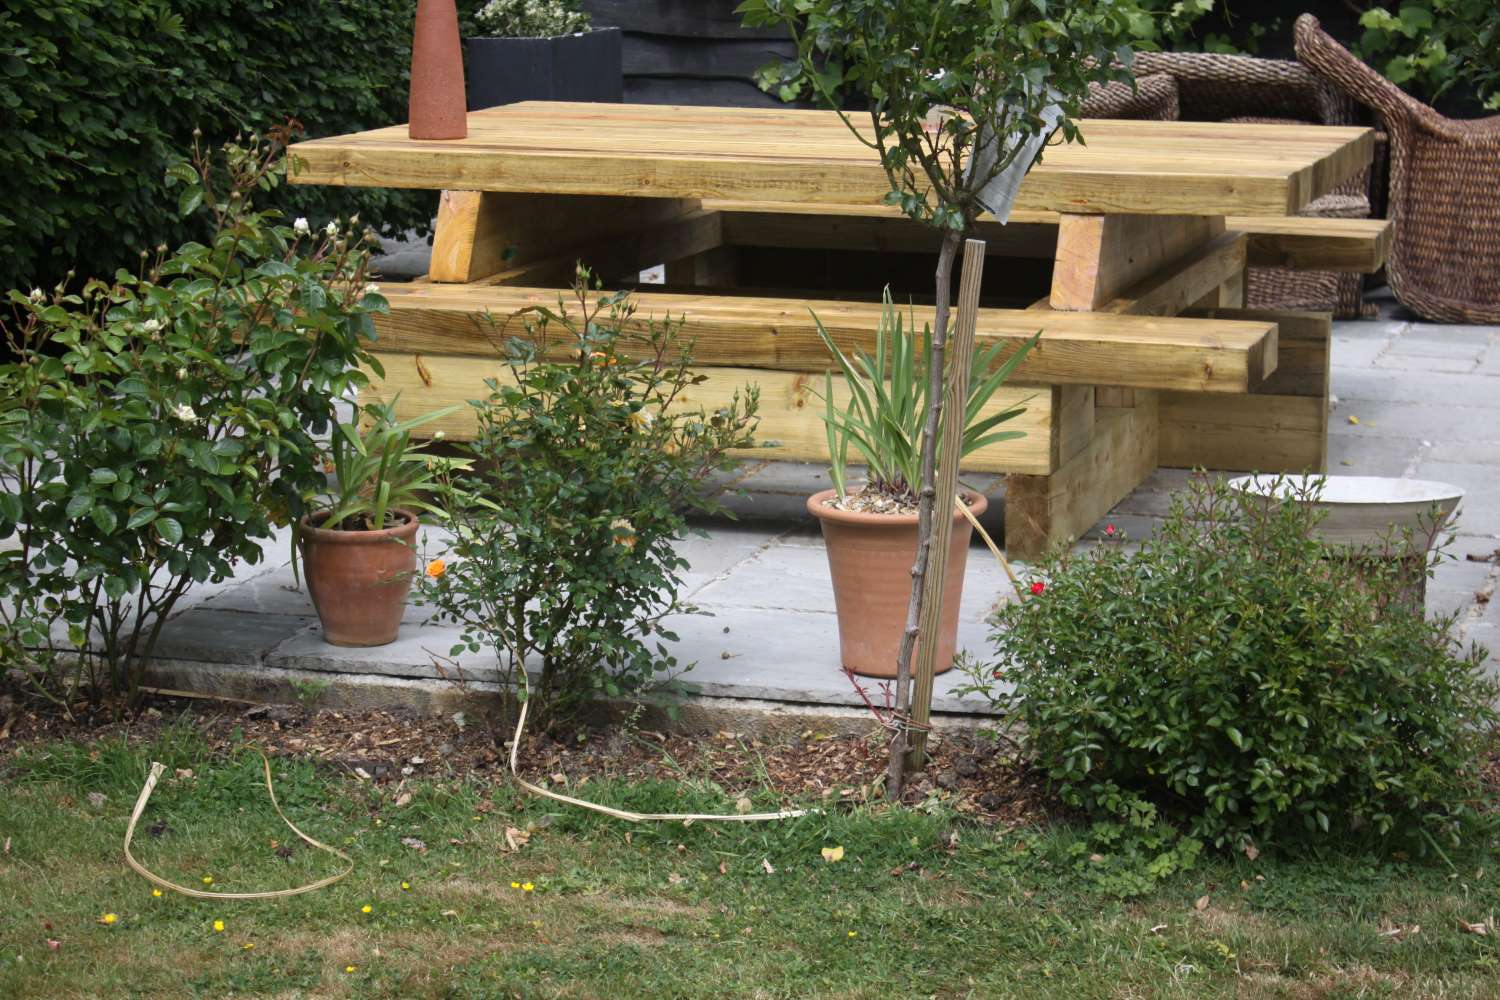 Outdoor Living structures - Bespoke Outdoors Living Ltd on Outdoor Living Ltd id=13259